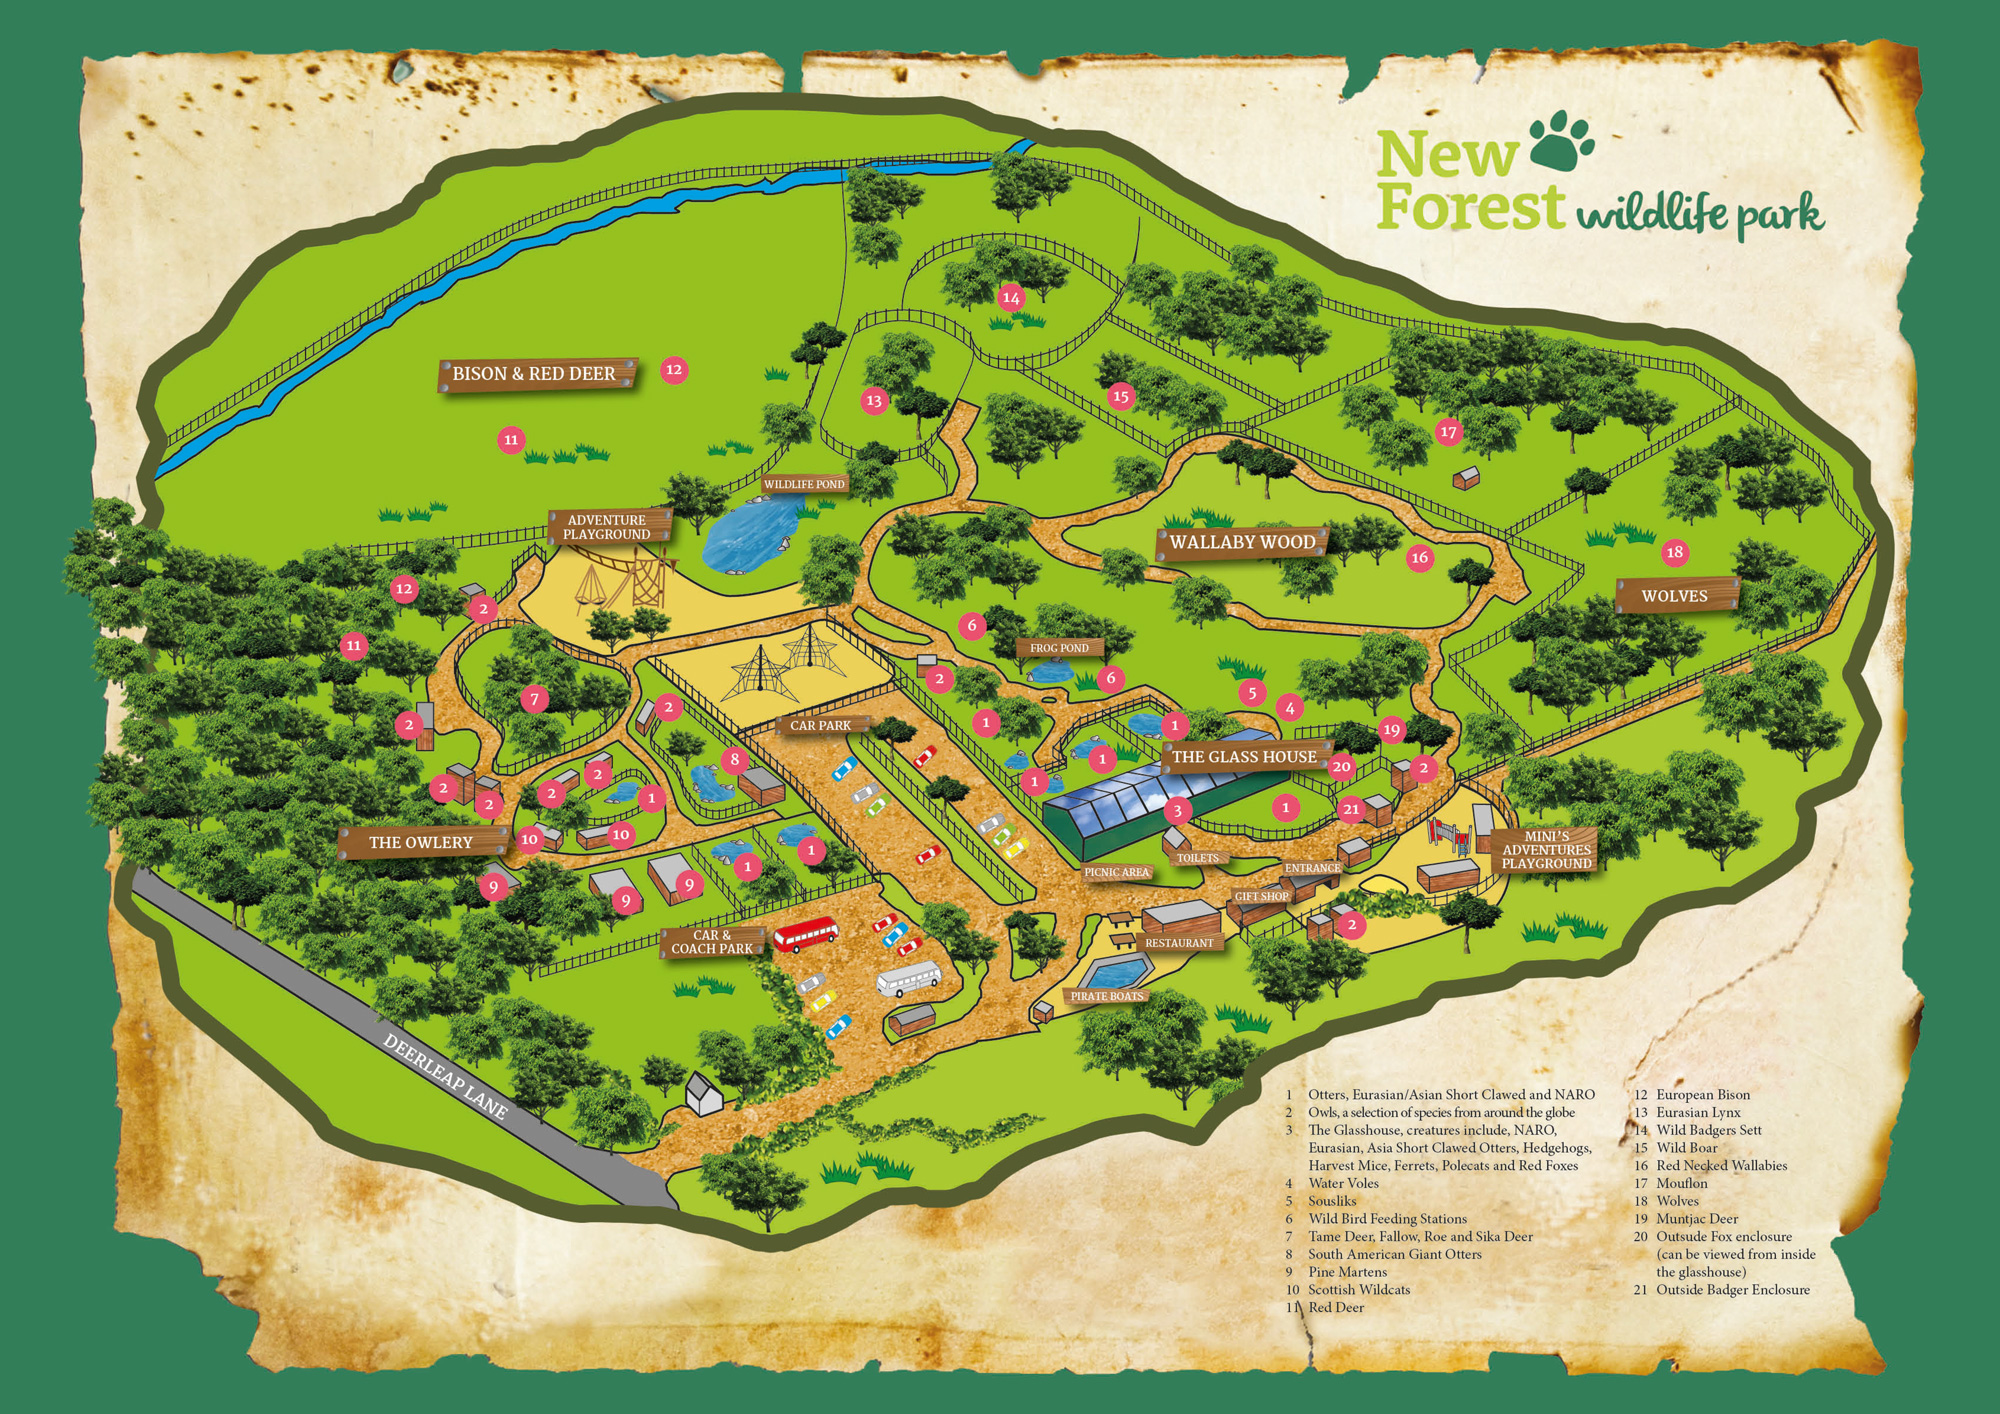 The Park Map   New Forest Wildlife Park New Forest Wildlife Park map